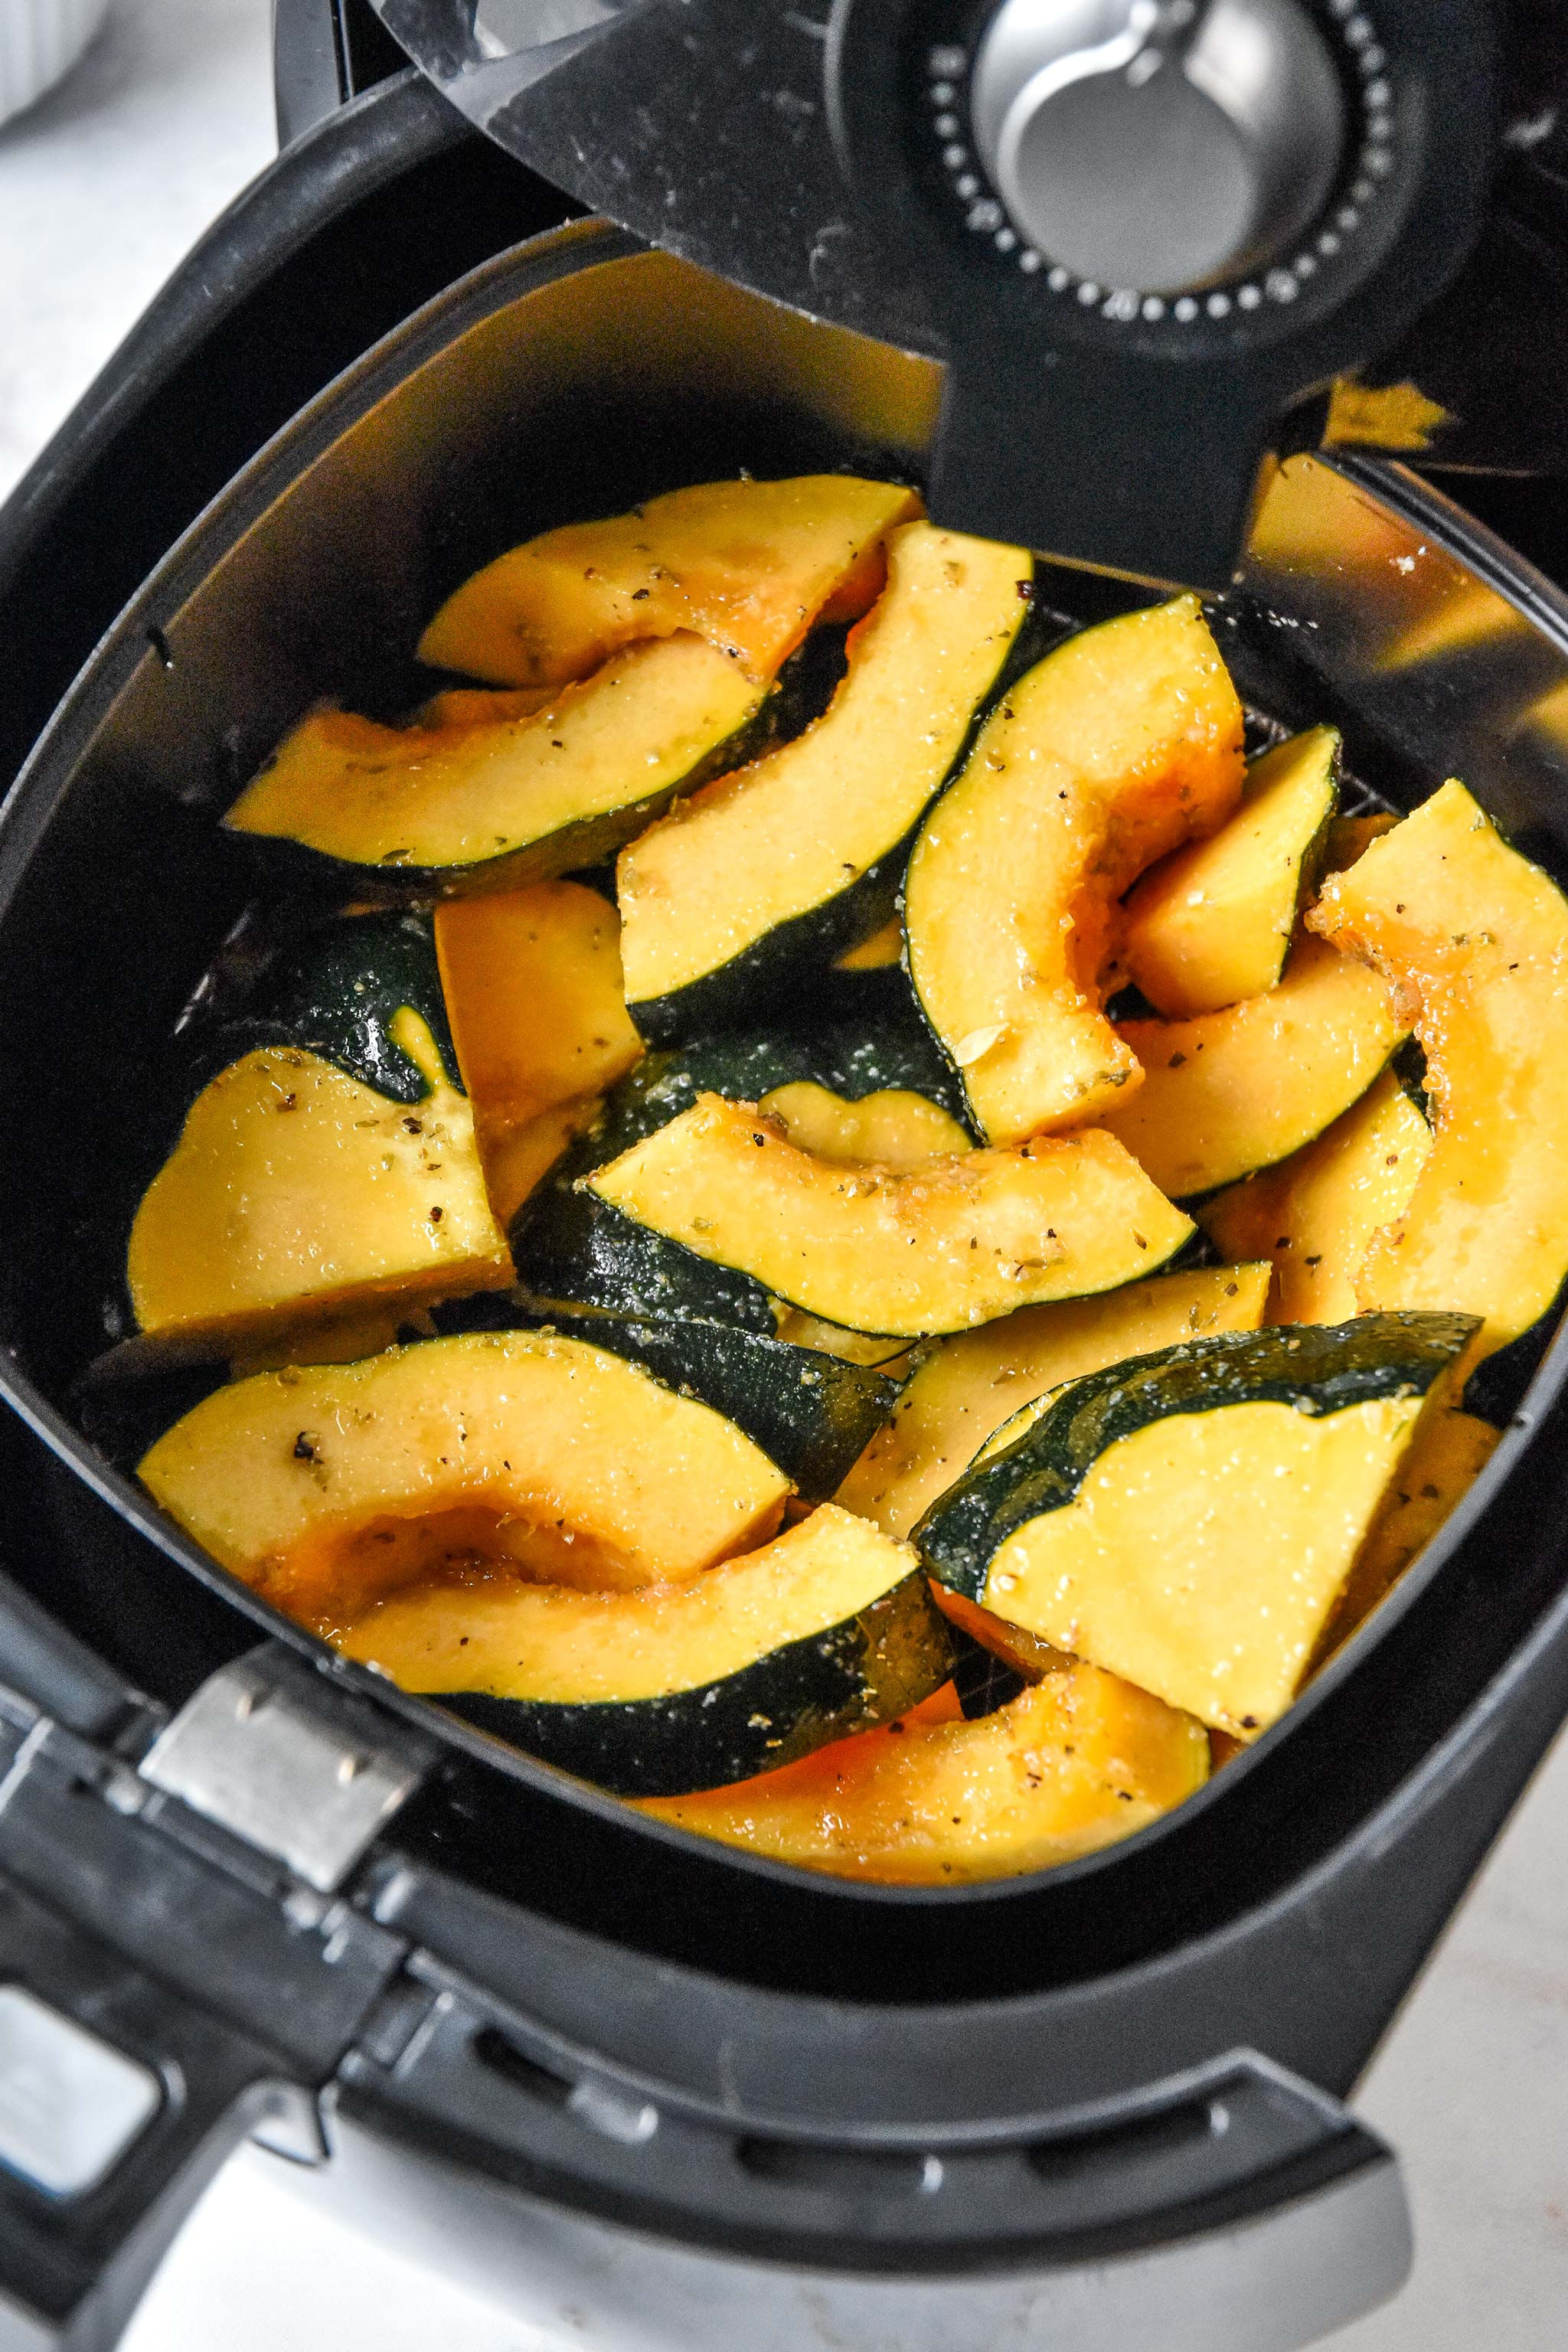 acorn squash in the air fryer ready to be cooked